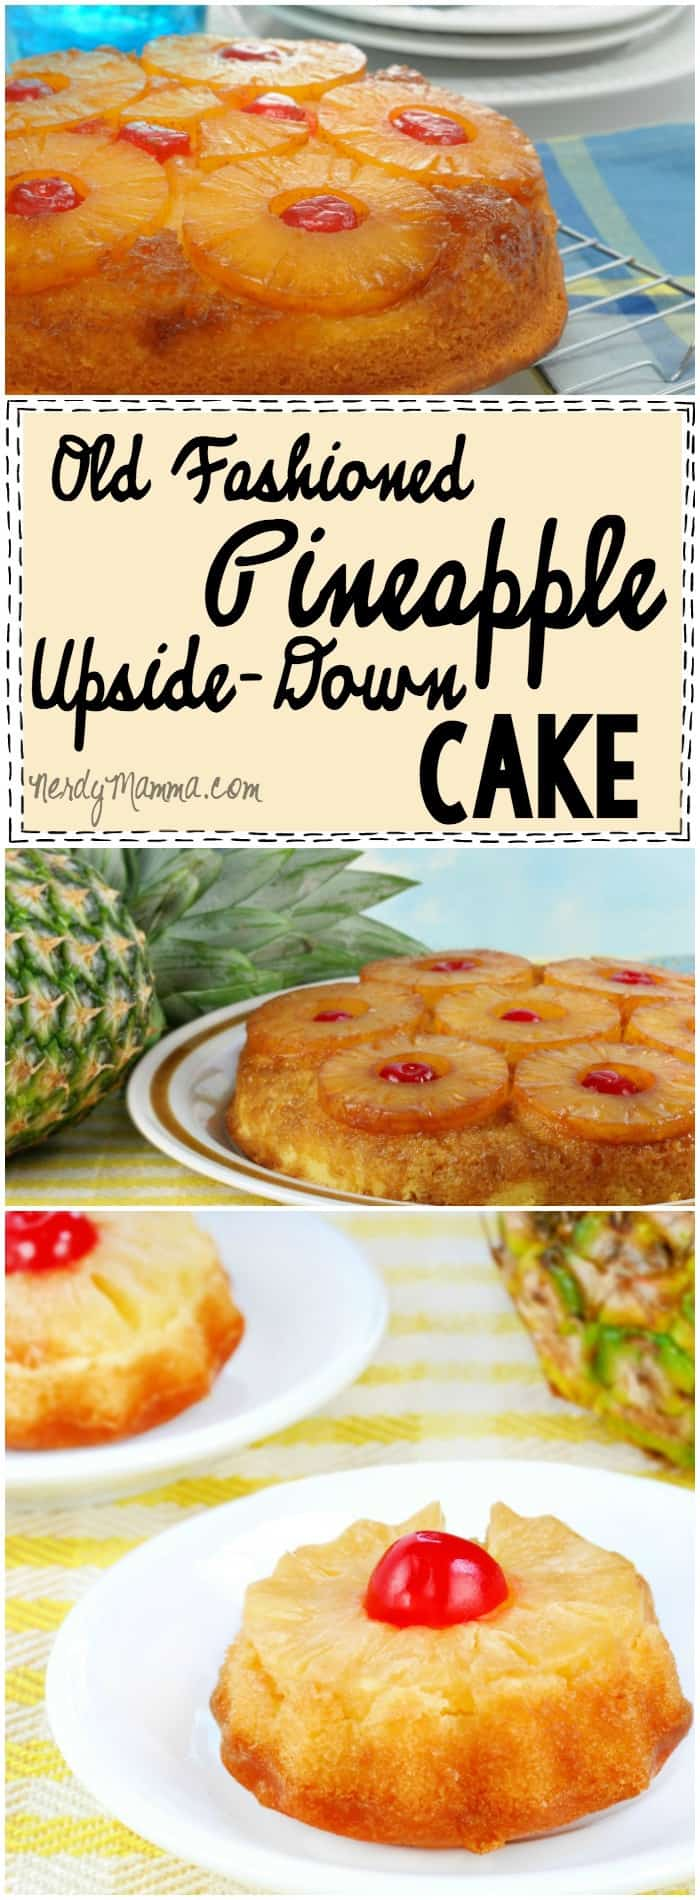 Mmmm...This recipe for Old Fashioned Pineapple Upside-Down Cake sounds so yummy--and so easy. I have to try it!